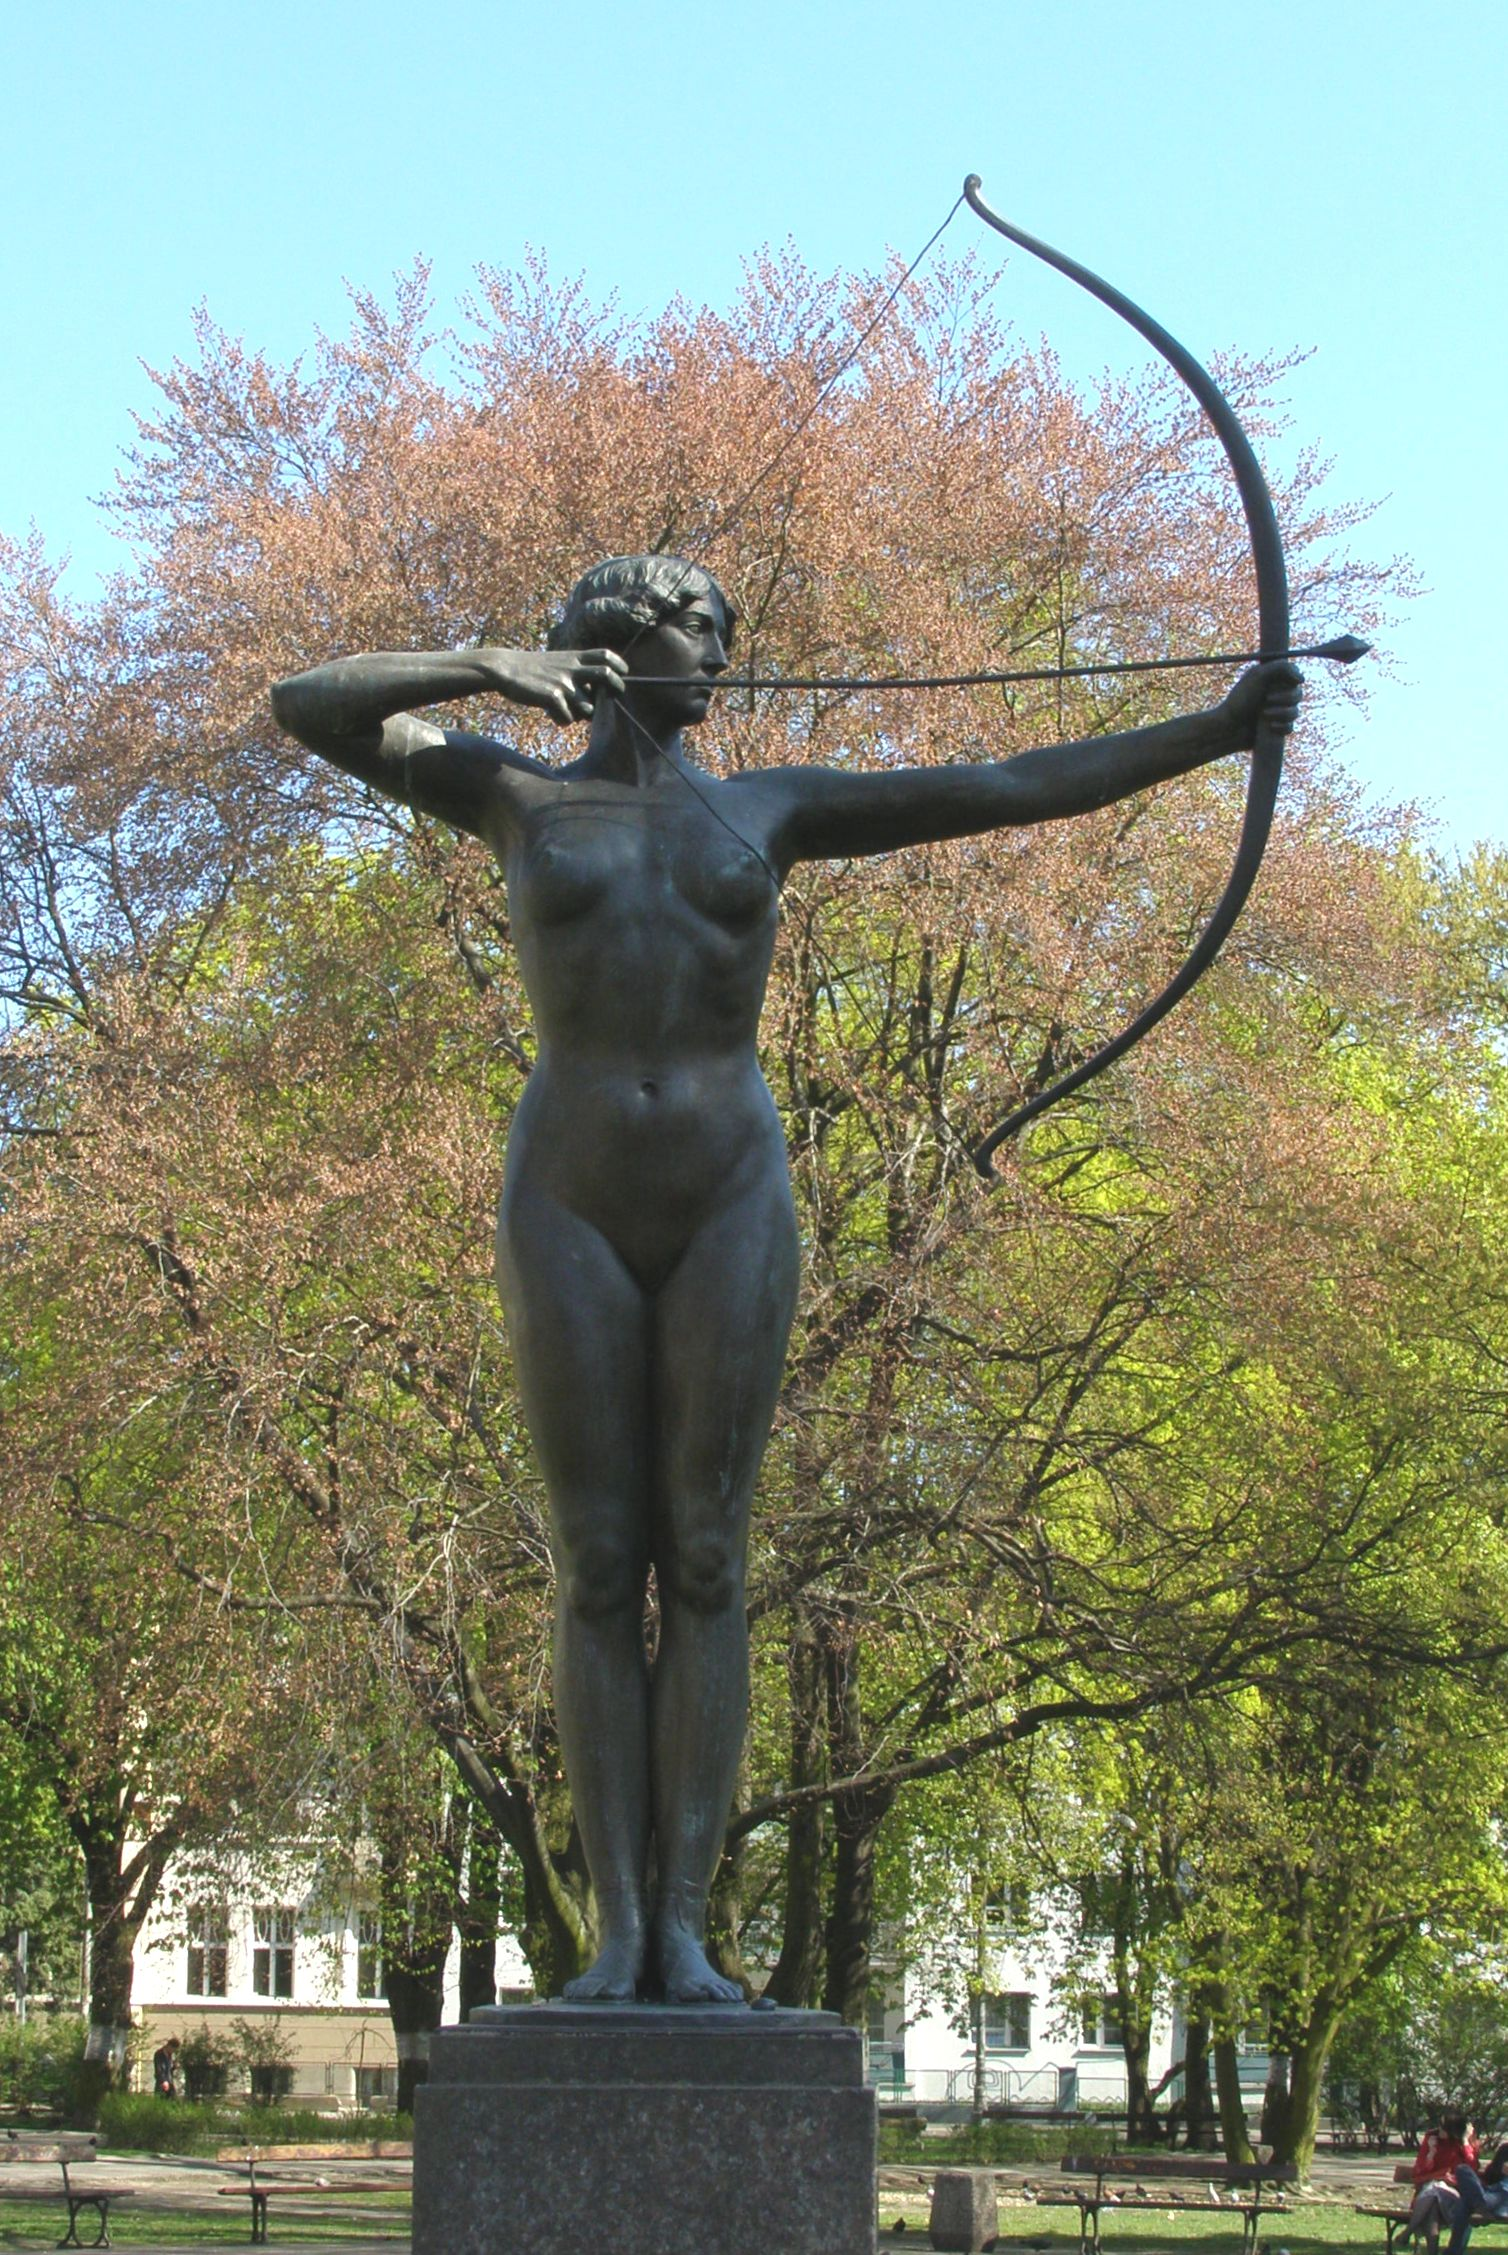 Statue of naked woman in Bydgoszcz, Poland, stanced with open bow and arrow